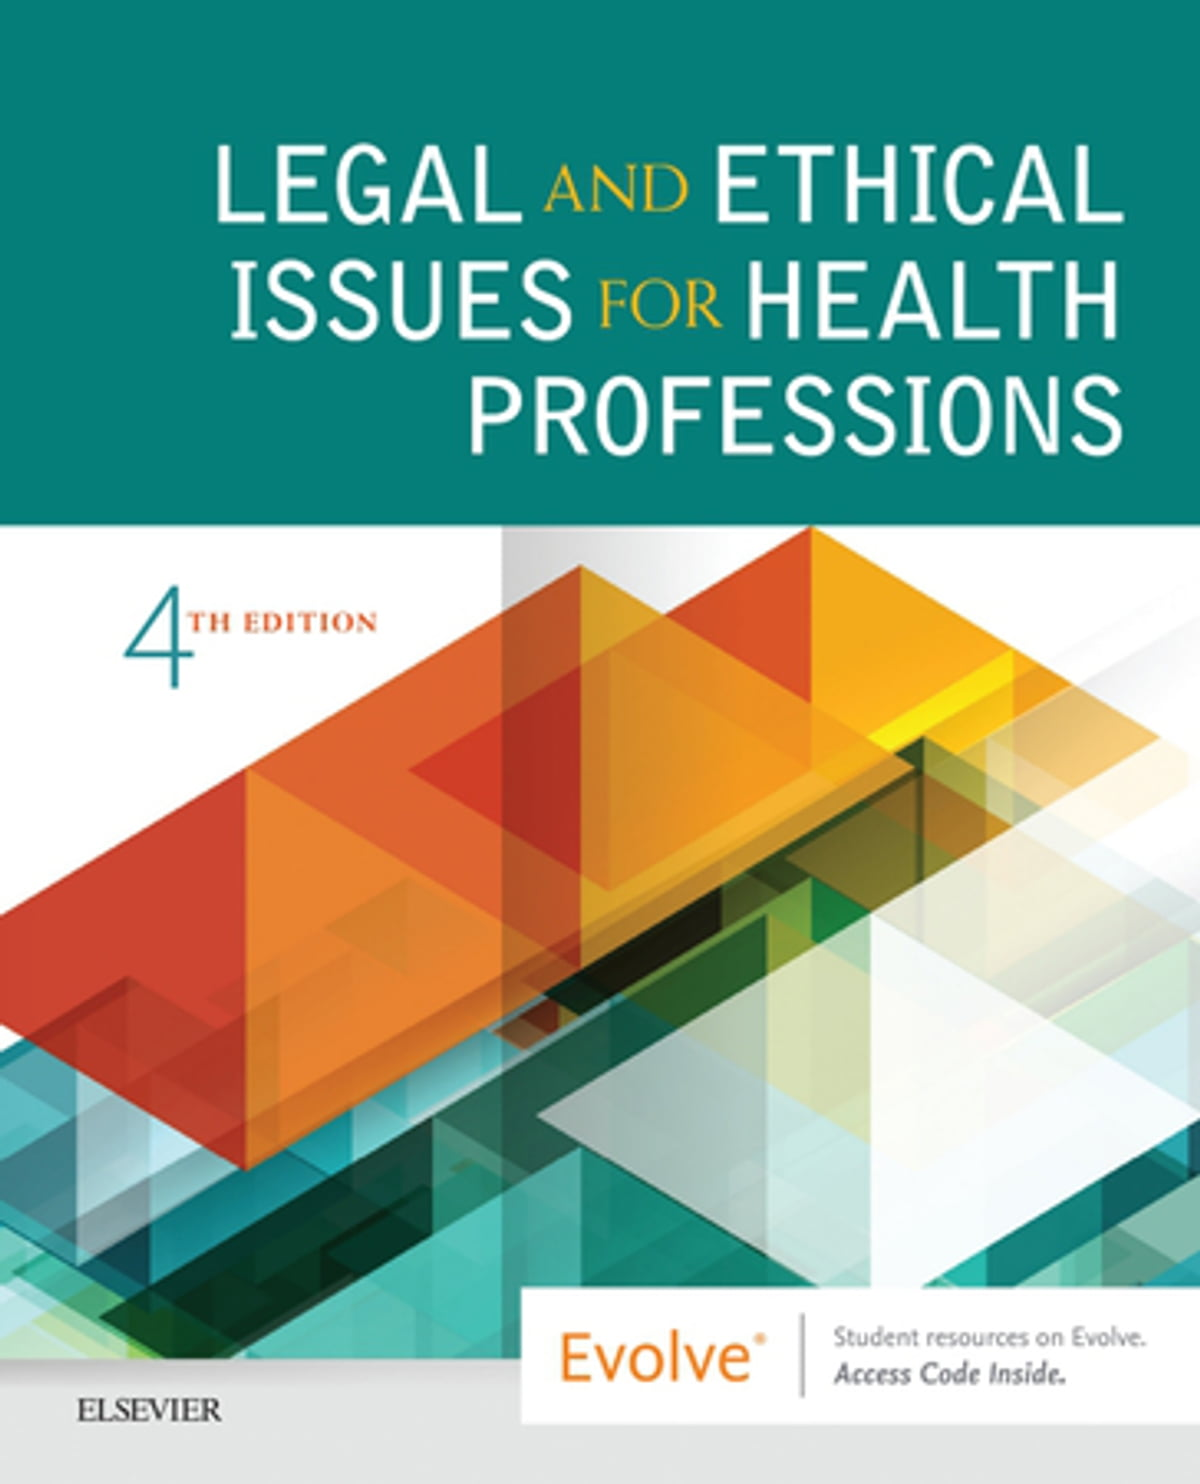 Legal and Ethical Issues for Health Professions eBook by Elsevier -  9780323550338 | Rakuten Kobo